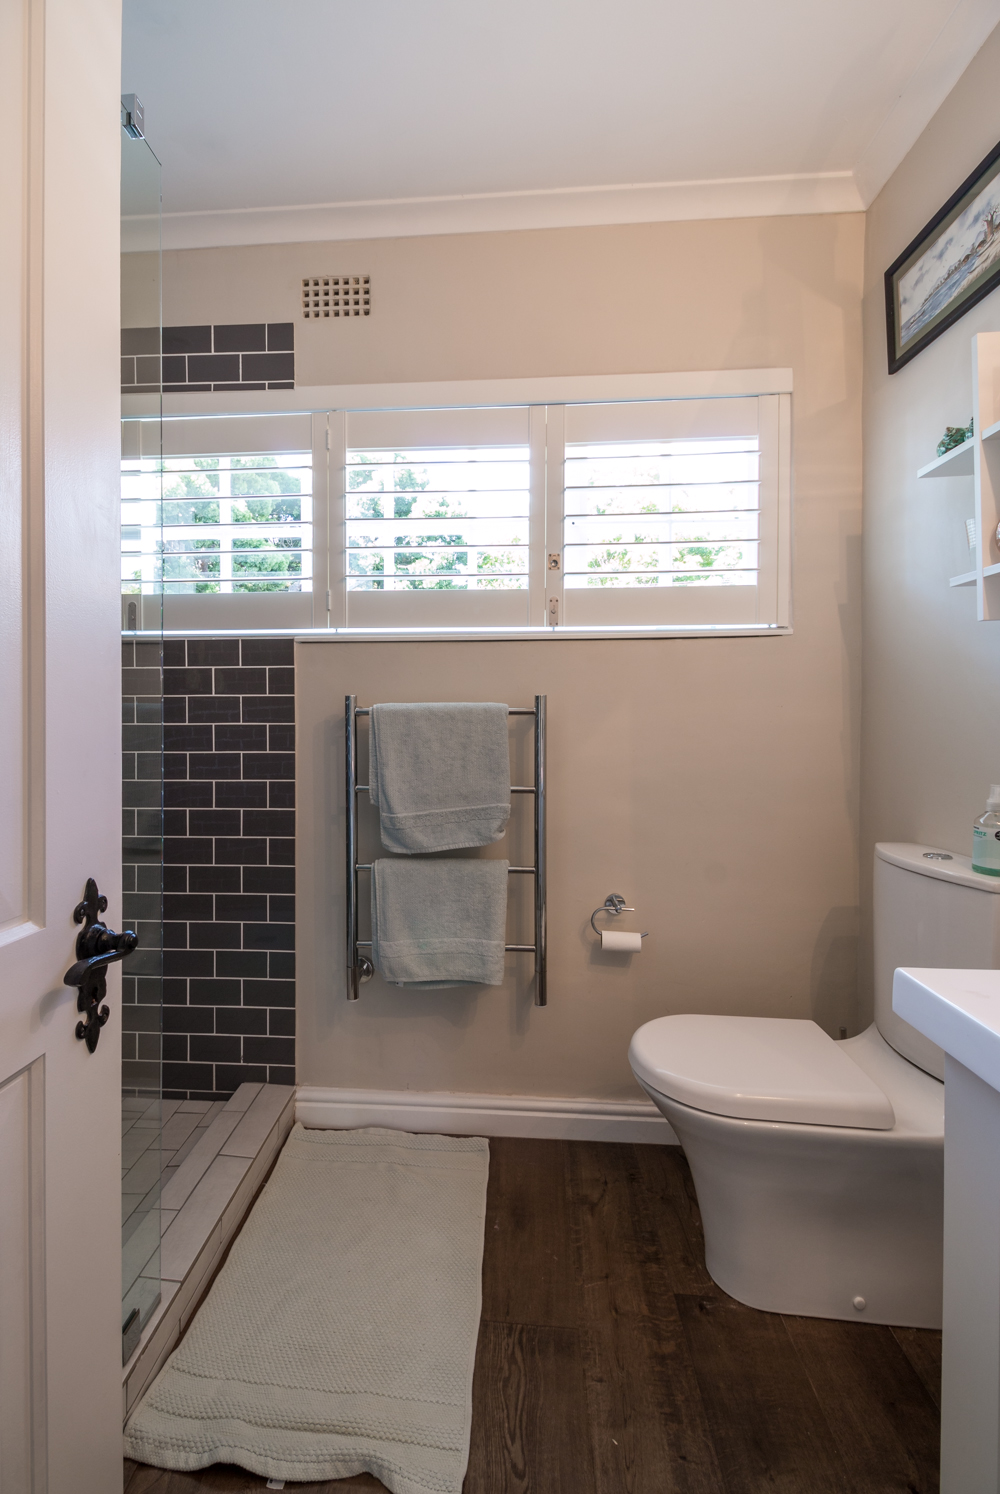 Family bathroom after renovation